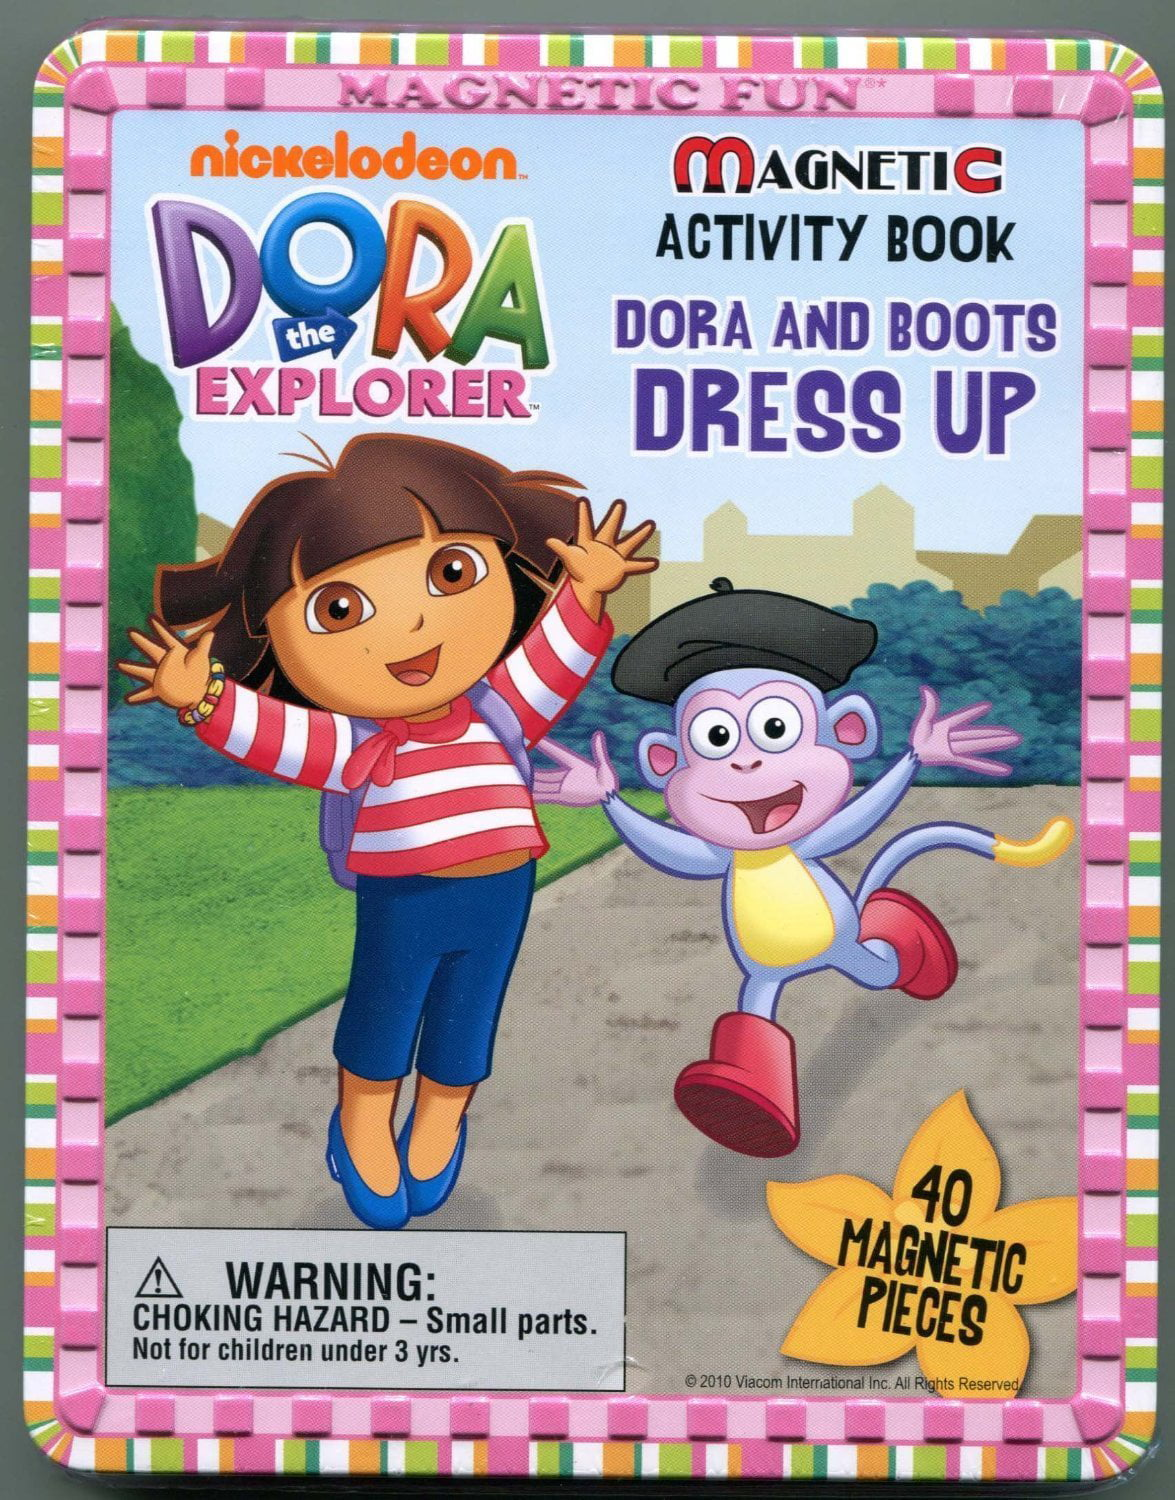 Dora the Explorer Magnetic Activity Book Dora and Boots Dress Up, Set contains 4 Play... by